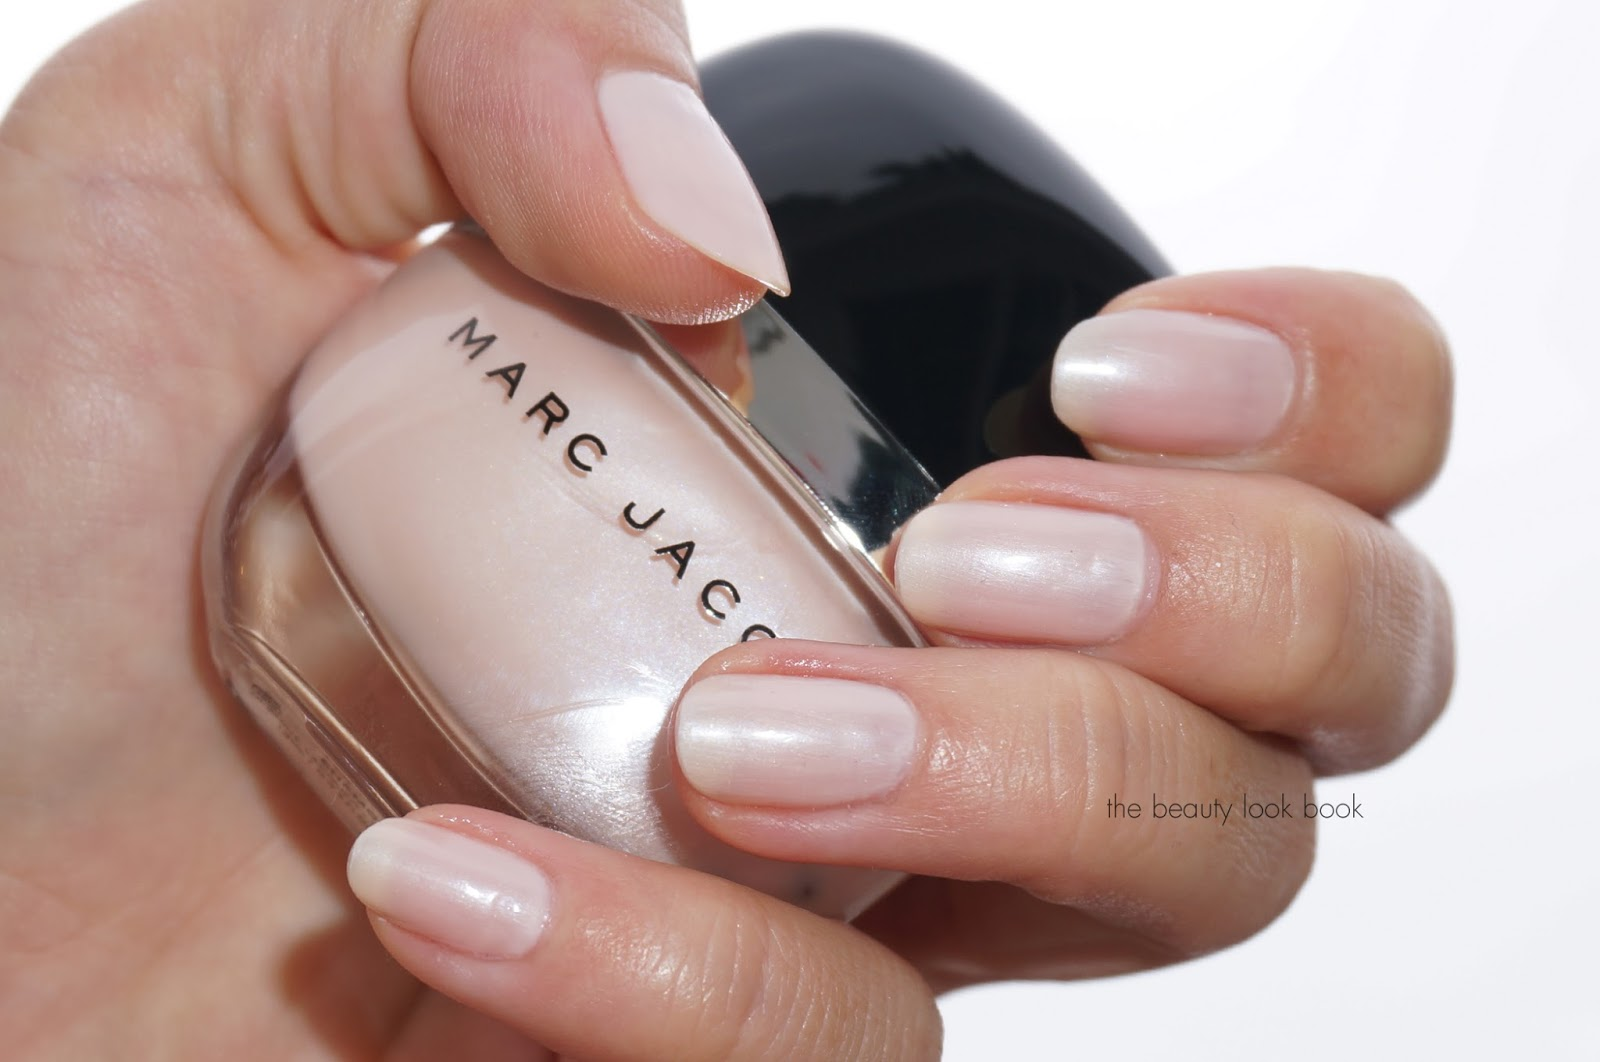 Marc Jacobs Beauty Enamored Hi-Shine Nail Lacquer in Daisy #102 ...